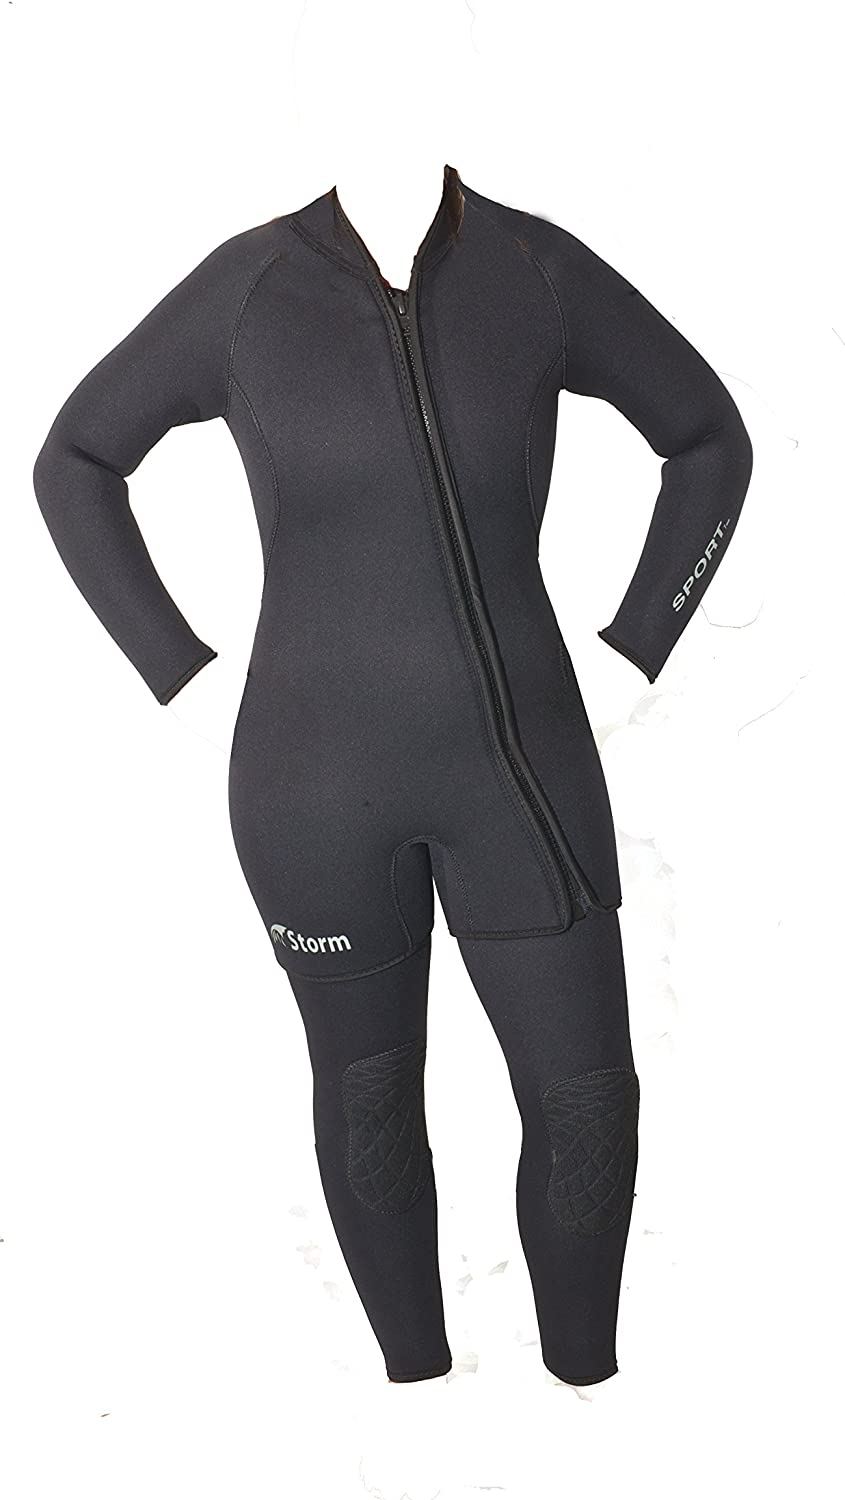 NEW Neosport Womens 7mm Wetsuit Size 8 12 Sleeveless Farmer Jane Dive Suit NWT